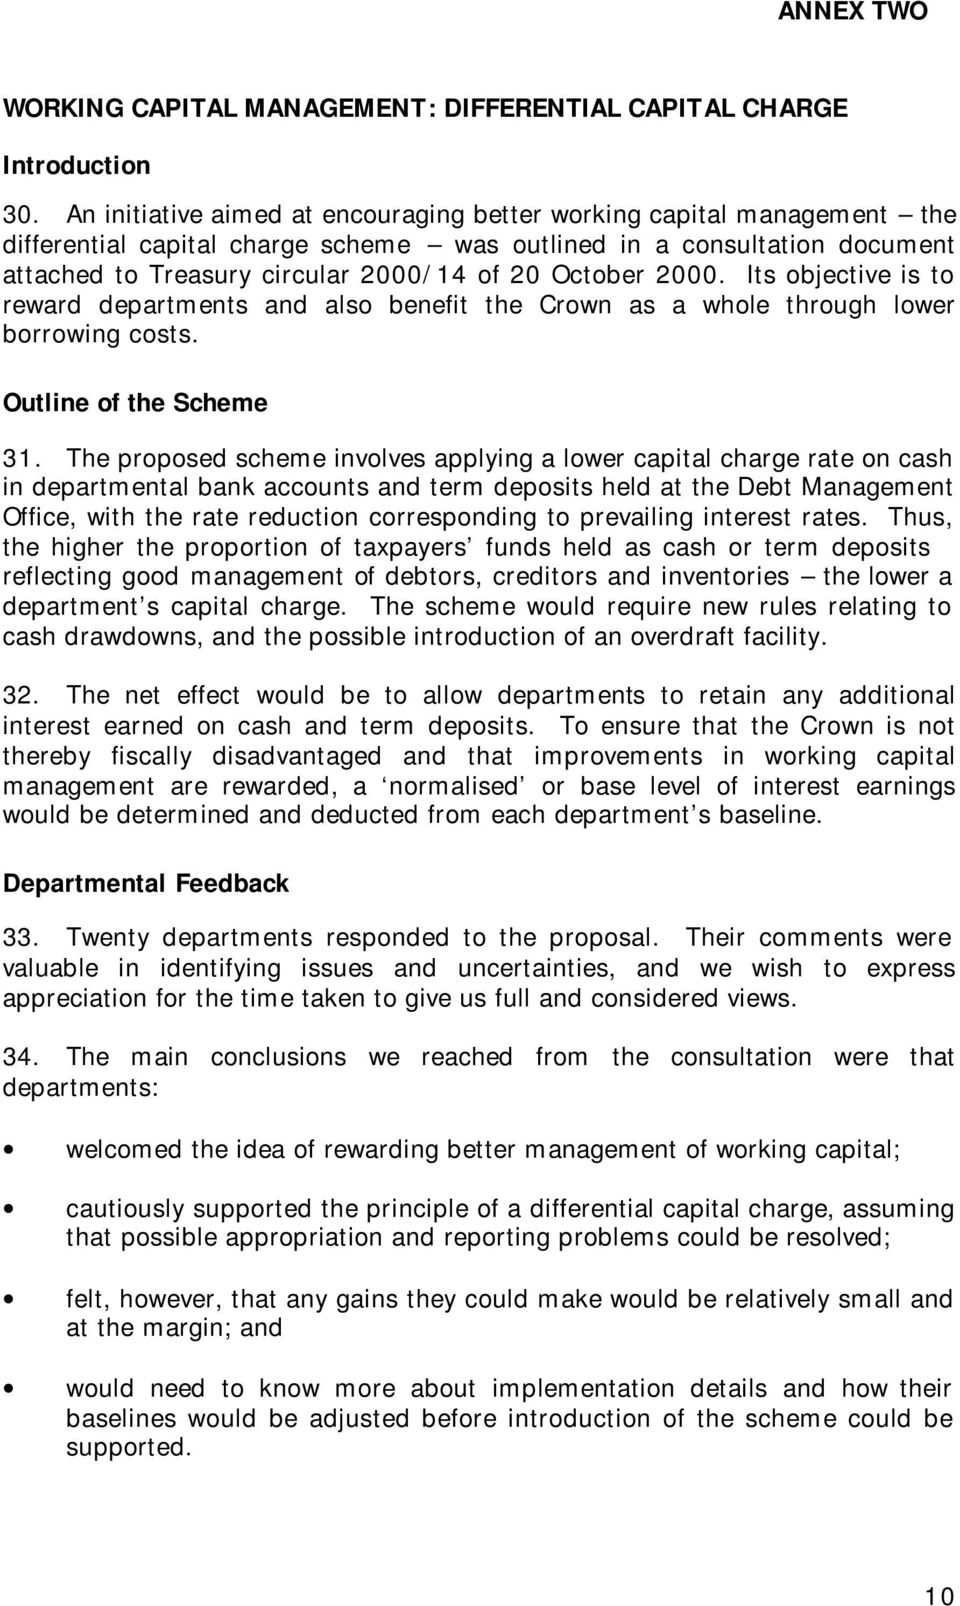 2000. Its objective is to reward departments and also benefit the Crown as a whole through lower borrowing costs. Outline of the Scheme 31.